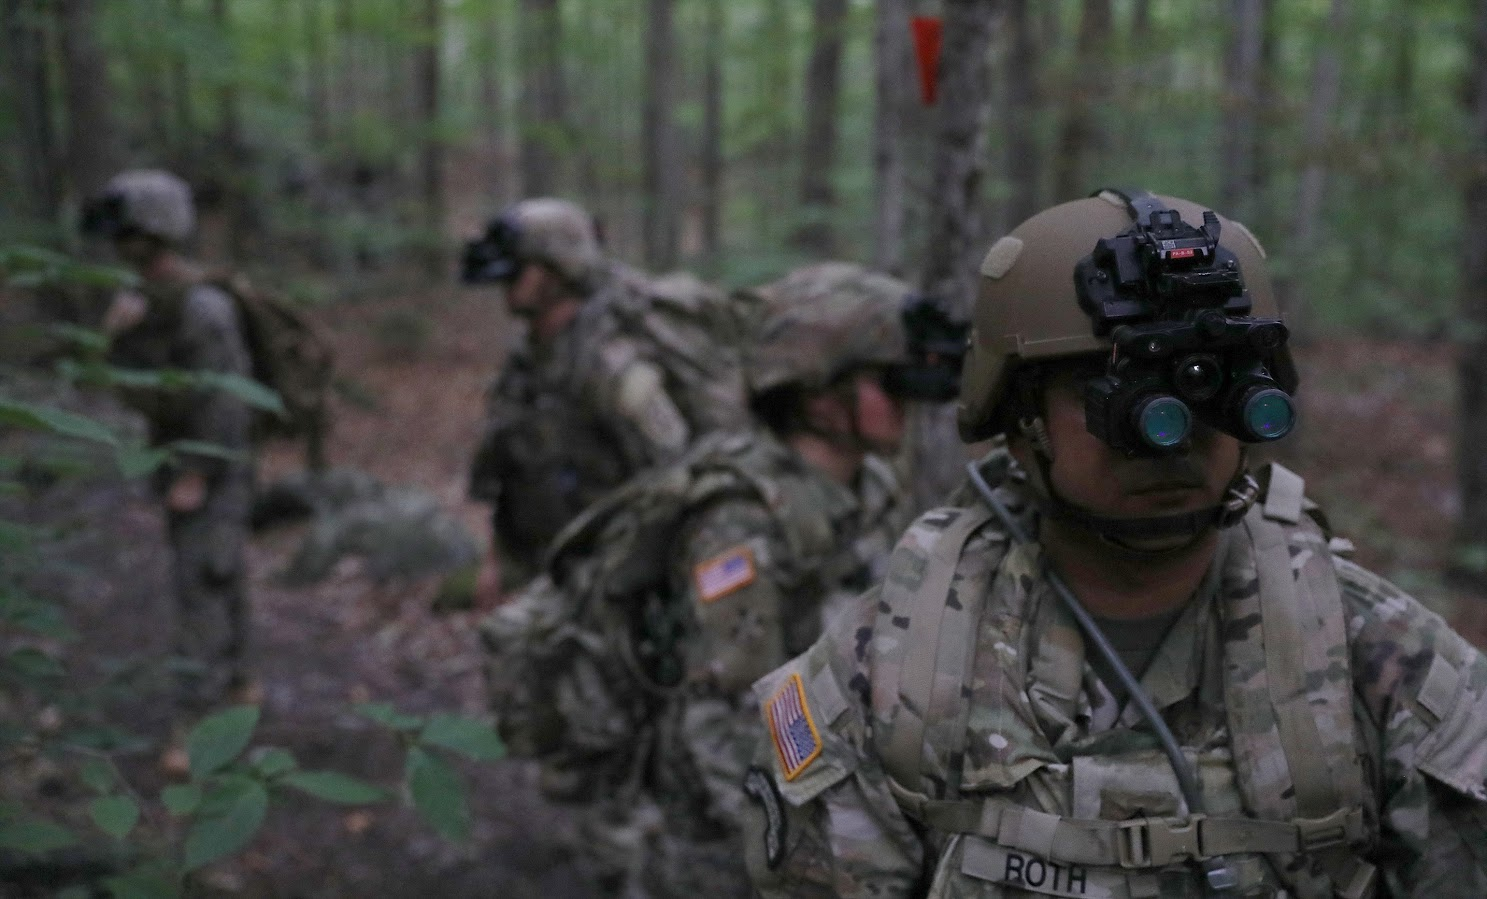 Army Issues Next Gen Targeting Goggles Breaking Defense